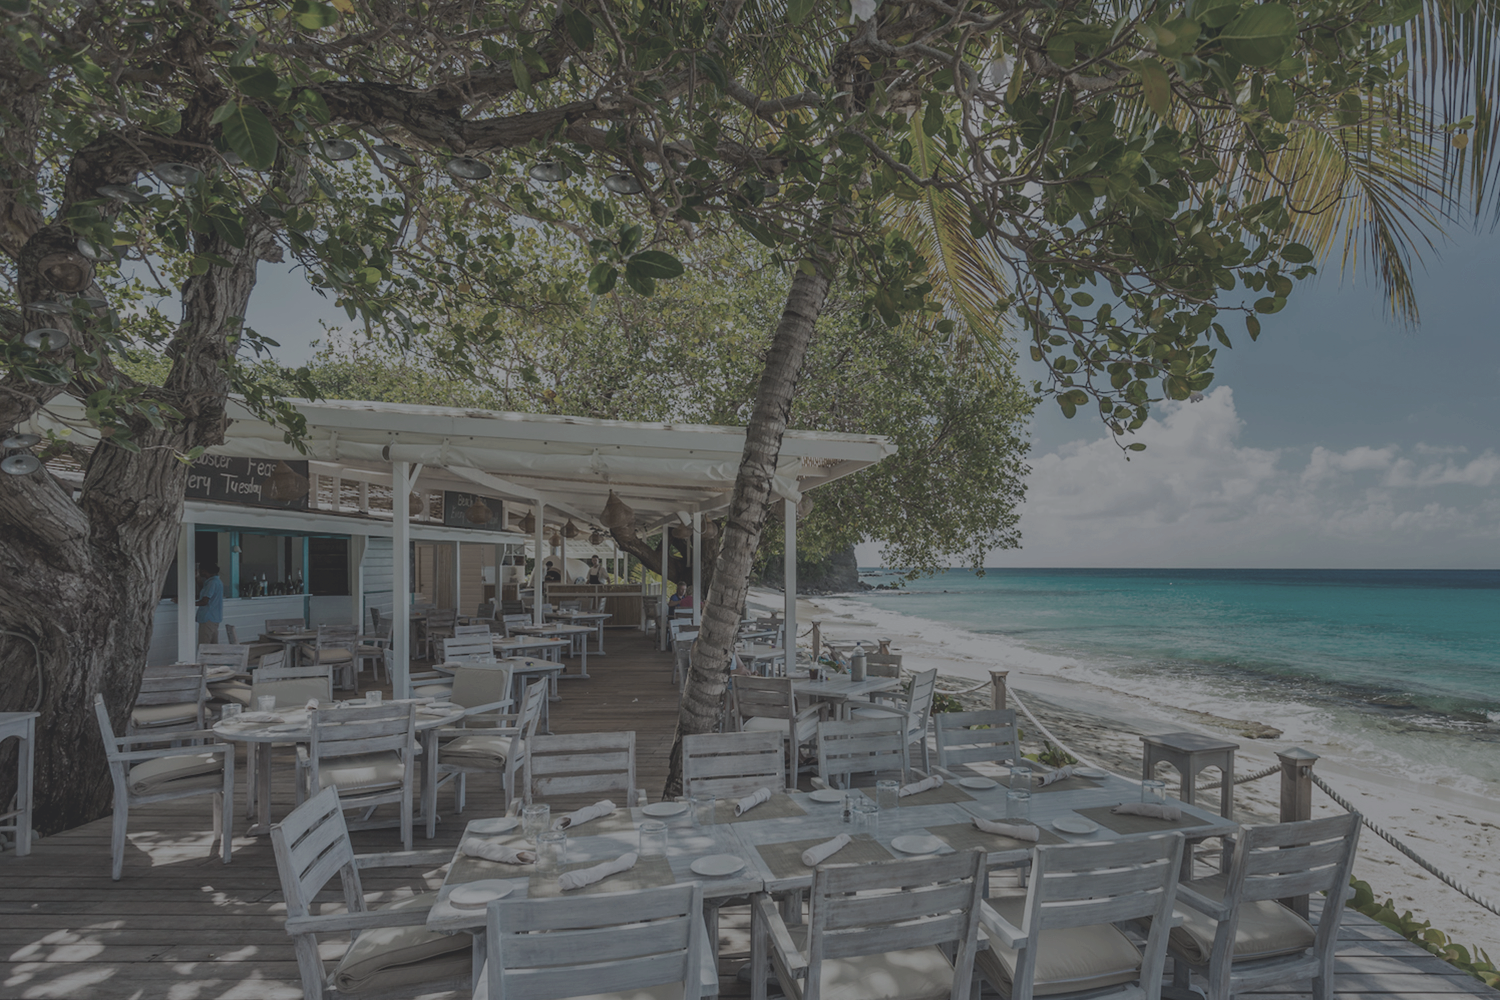 PHOTO: THE BEACH CAFE |COURTESY OF THE MUSTIQUE COMPANY